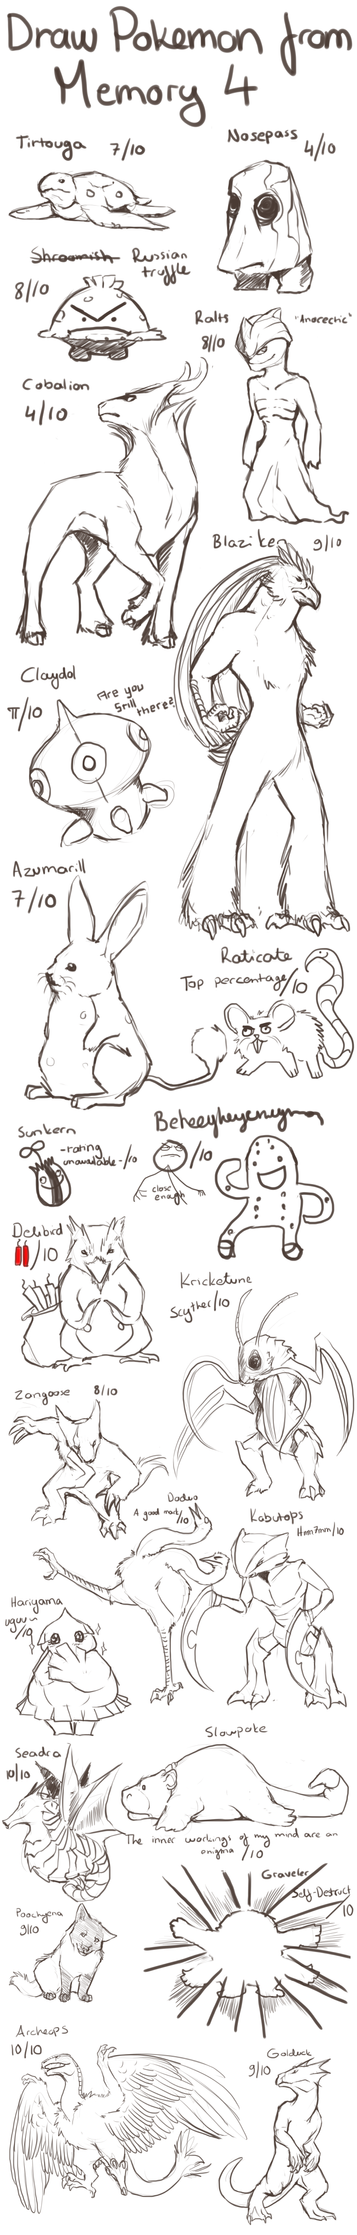 Draw Pokemon From Memory 4 by ShadeofShinon